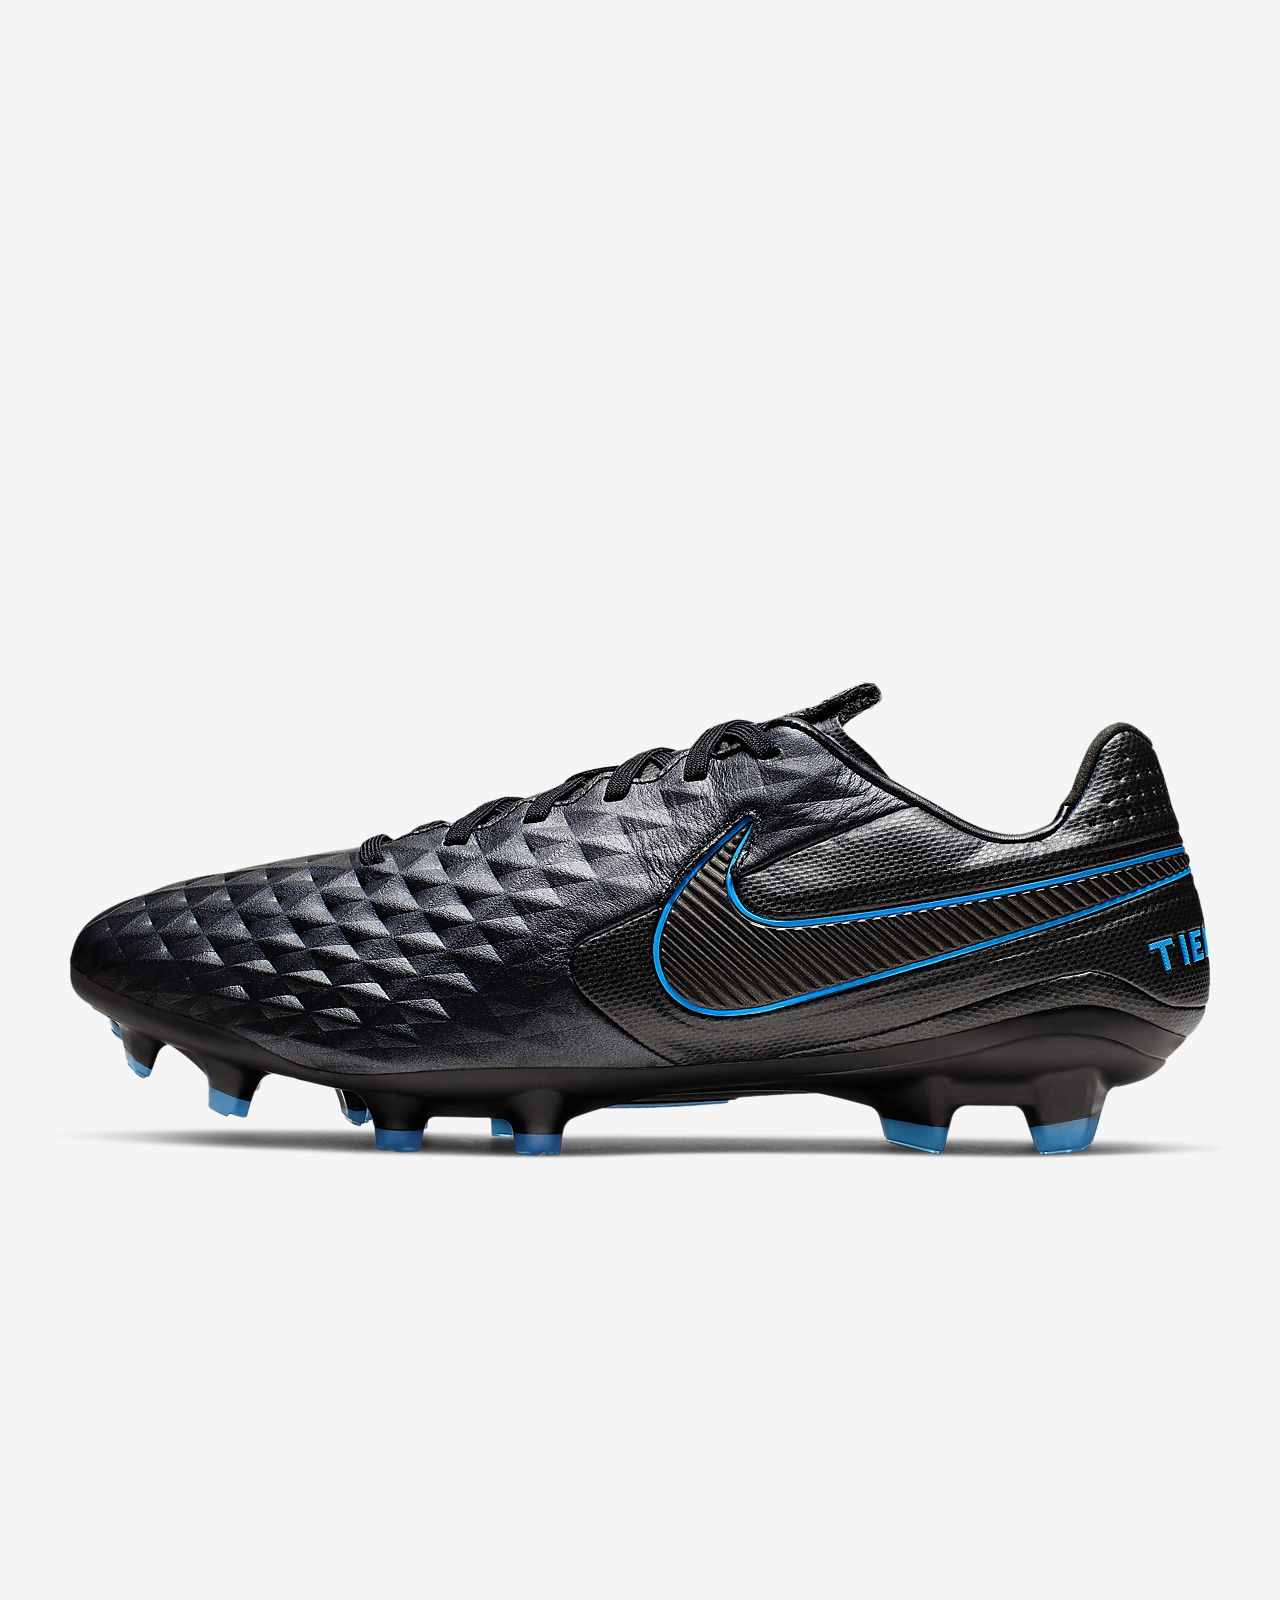 Nike Tiempo Legend 8 Pro FG Firm-Ground Soccer Cleat